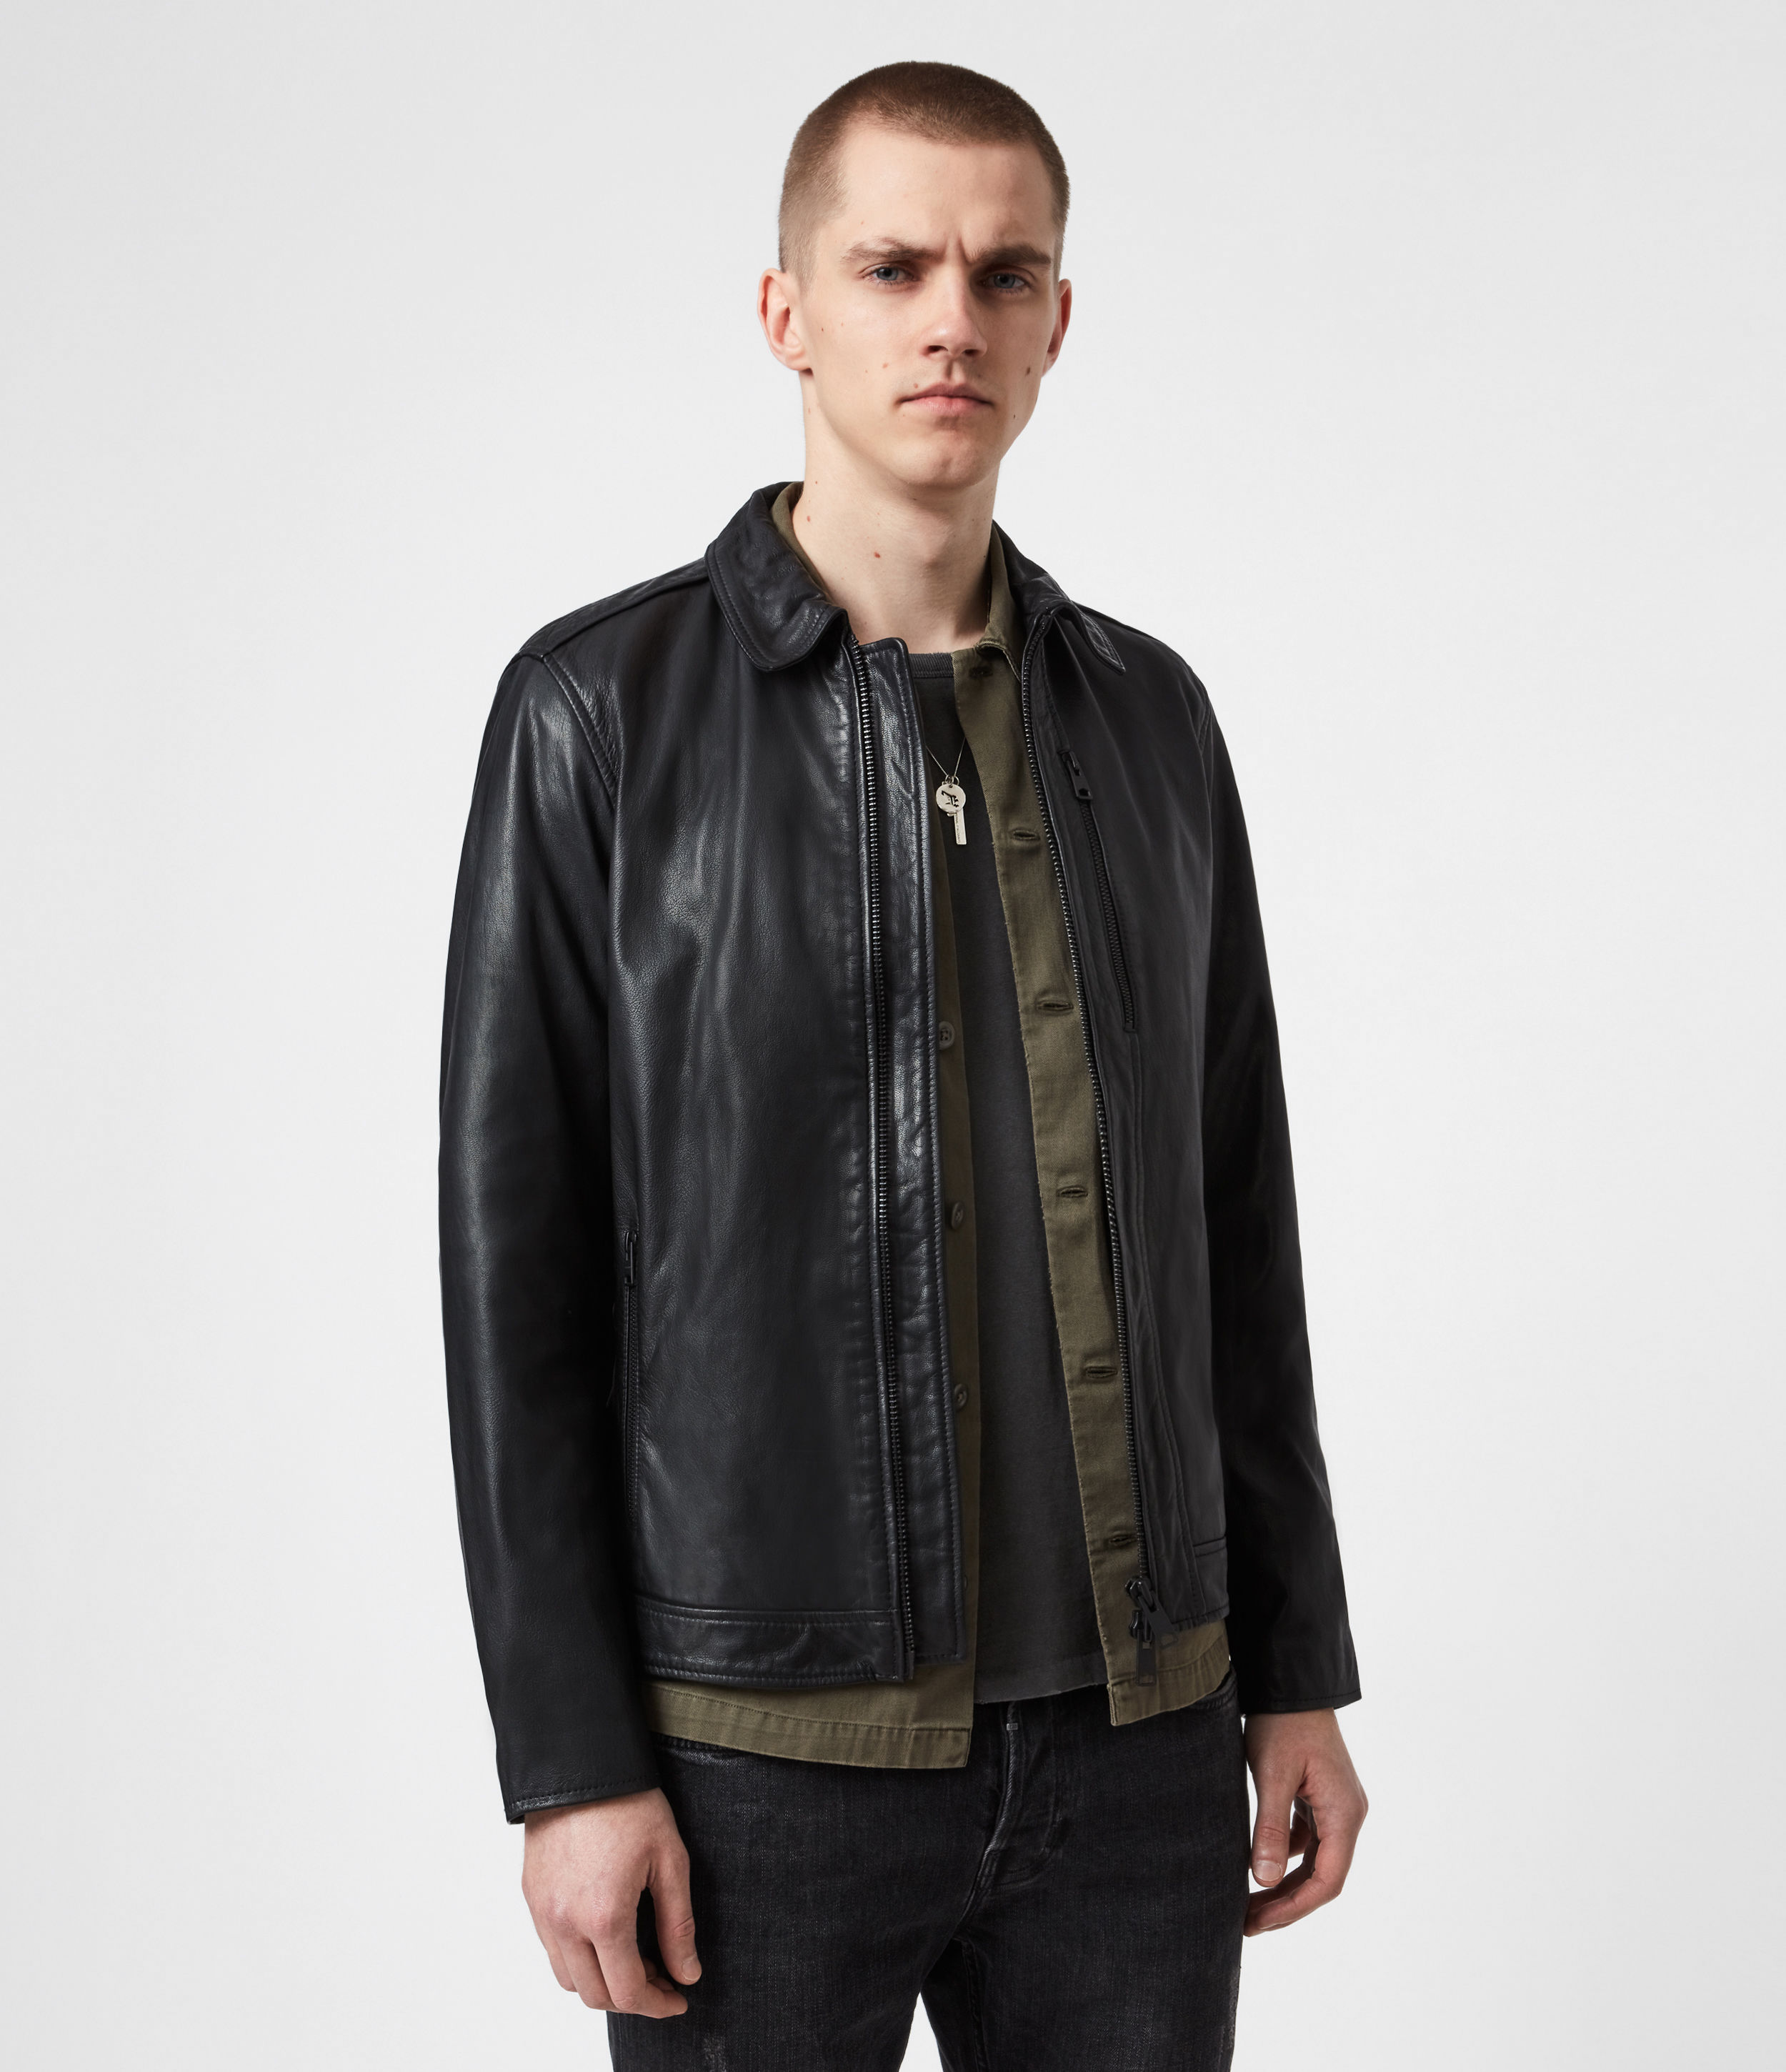 AllSaints Mens Timo Leather Jacket, Black, Size: XS